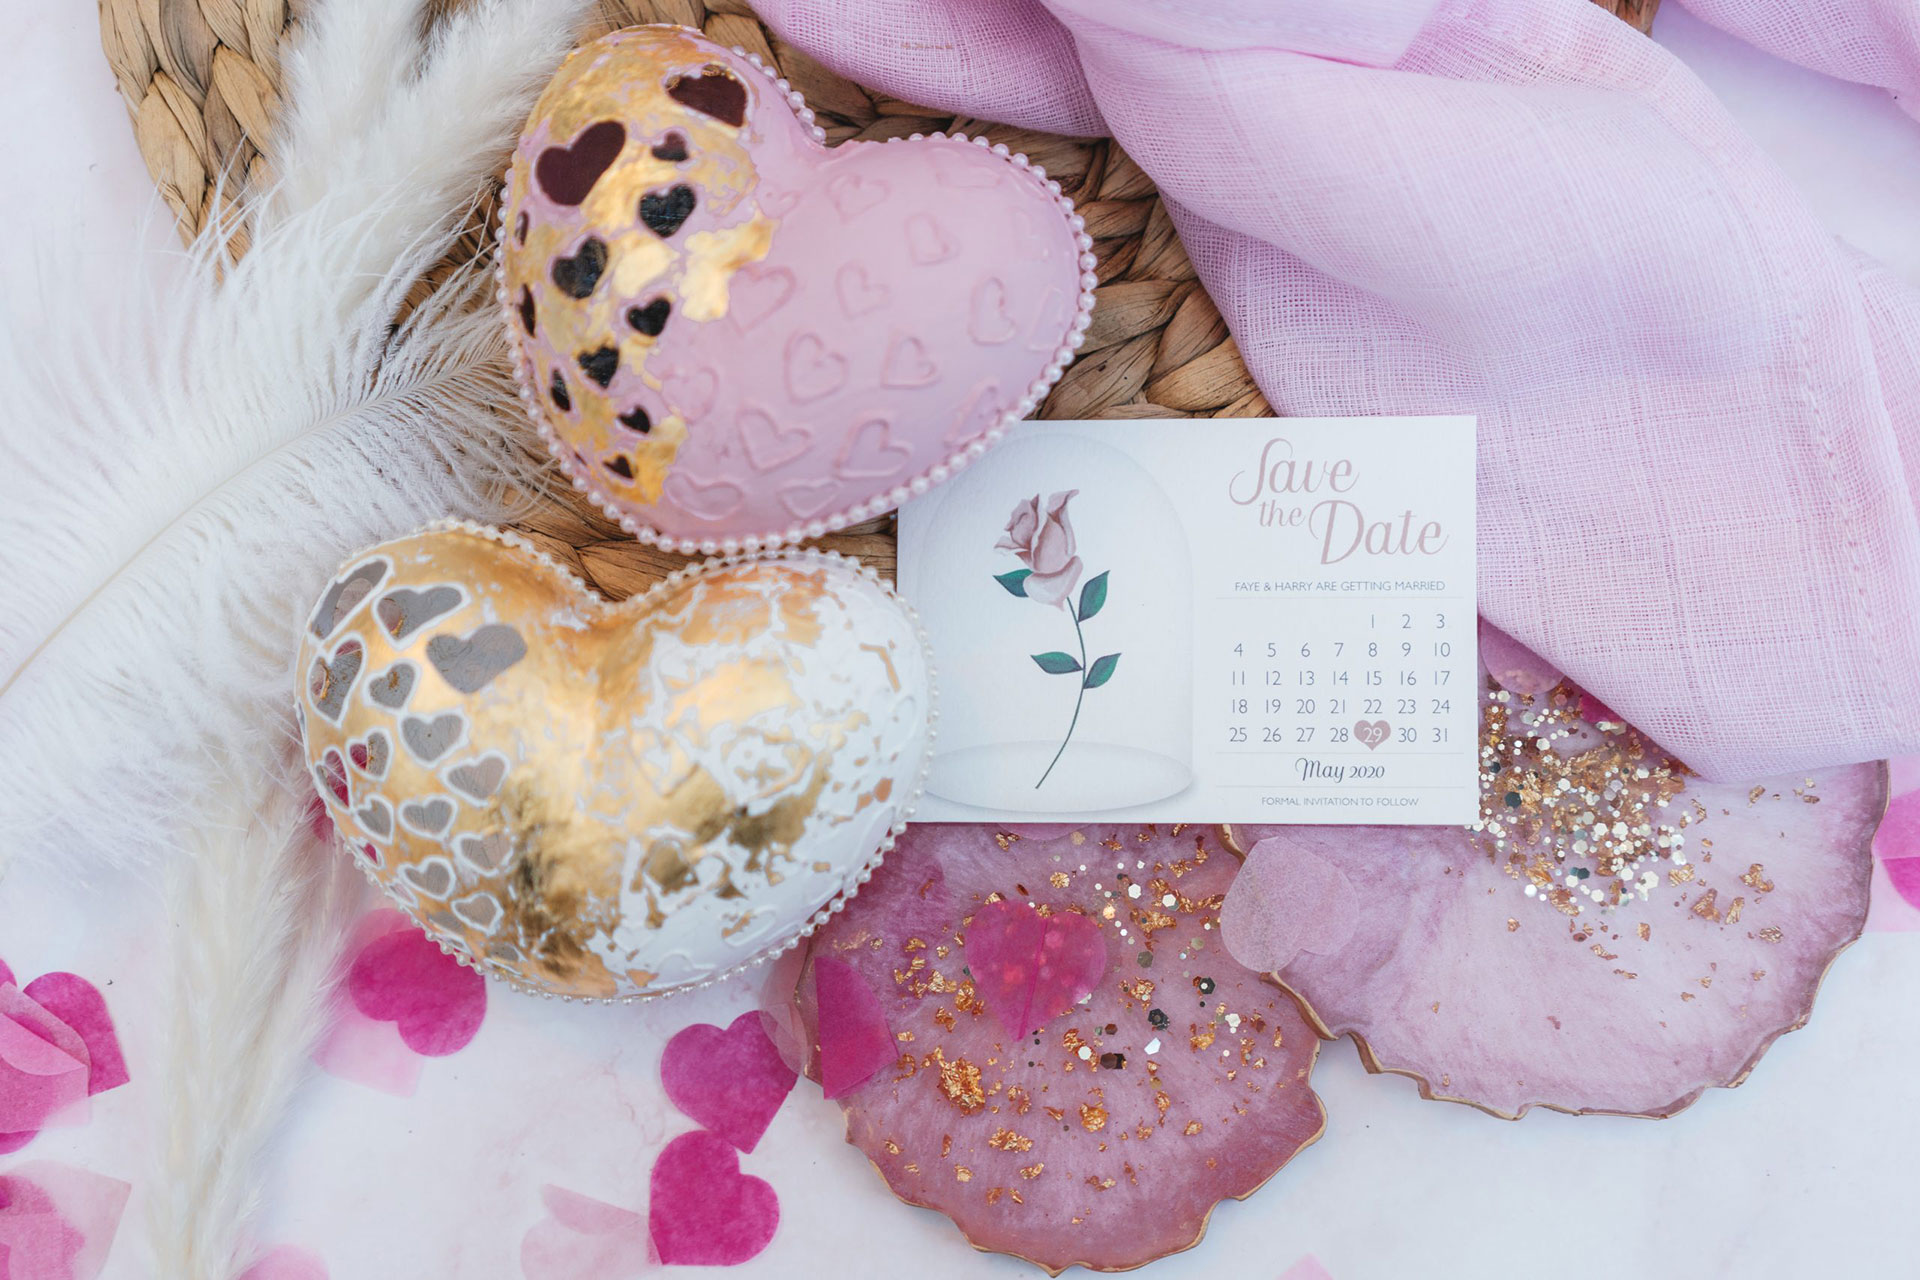 Pink and white Valentine's Day themes flat lay with 2 carved eggs in heart shapes, a wedding save the date card and 2 pink resin coaster on a wicker placemat with confetti and pink fabric around it.